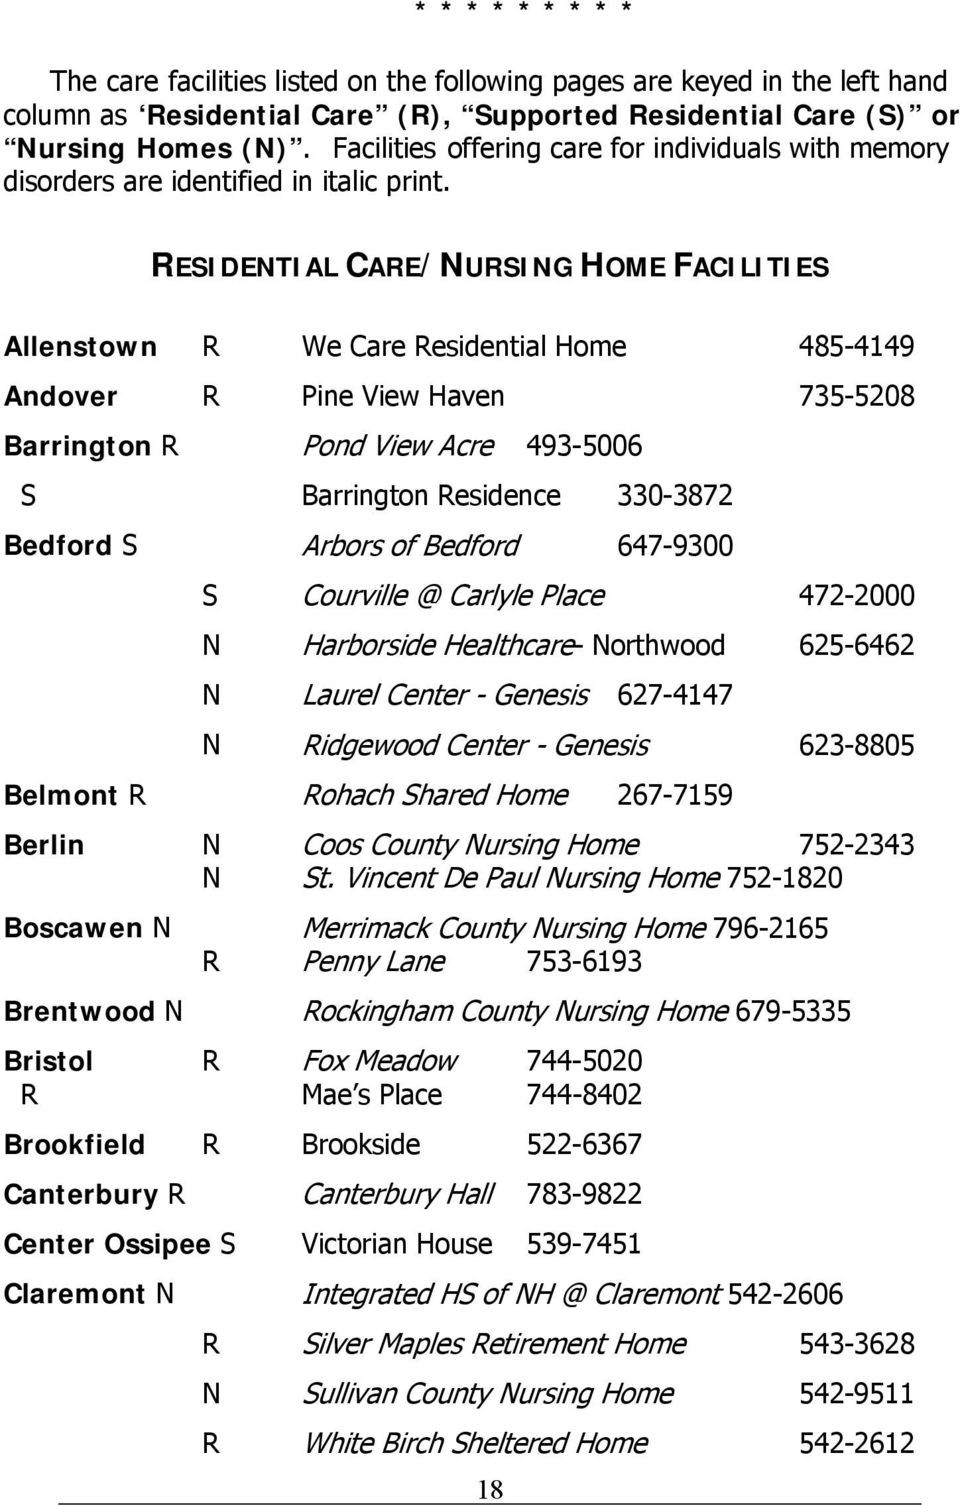 RESIDENTIAL CARE/NURSING HOME FACILITIES Allenstown R We Care Residential Home 485-4149 Andover R Pine View Haven 735-5208 Barrington R Pond View Acre 493-5006 S Barrington Residence 330-3872 Bedford